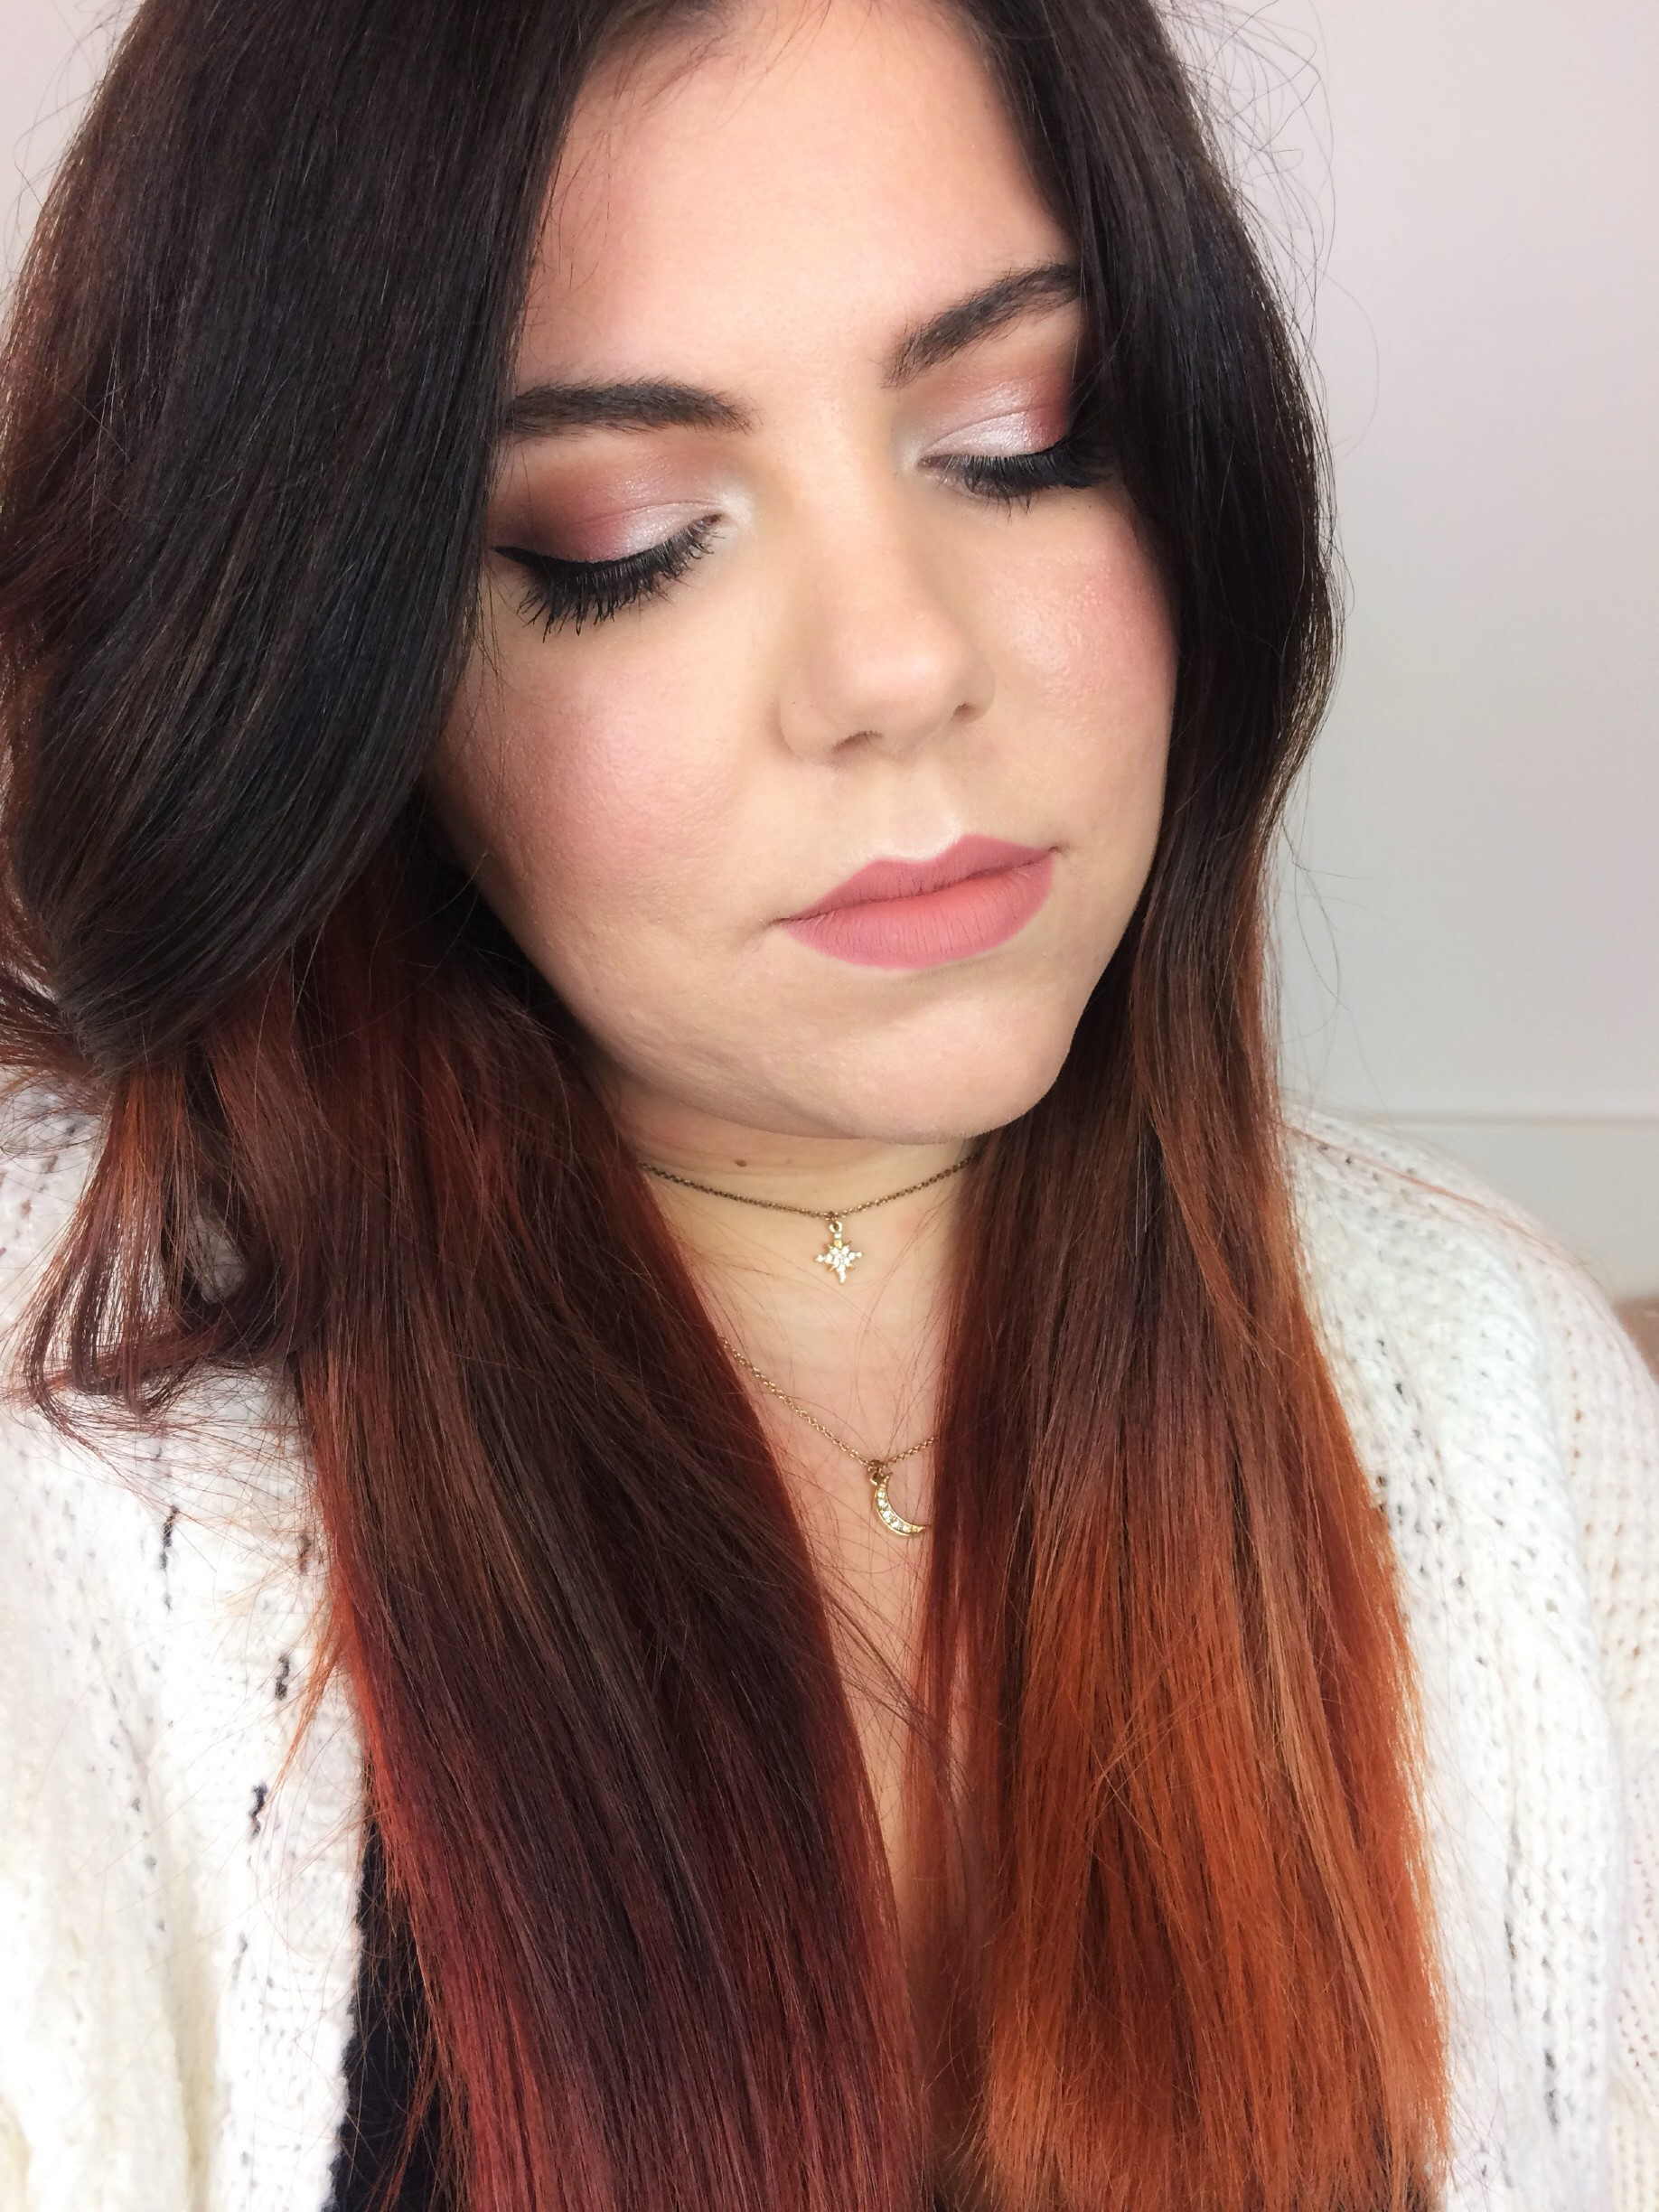 Cool toned smokey eye with a pop of red using the Anastasia Modern Renaissance Palette [Click to read more]